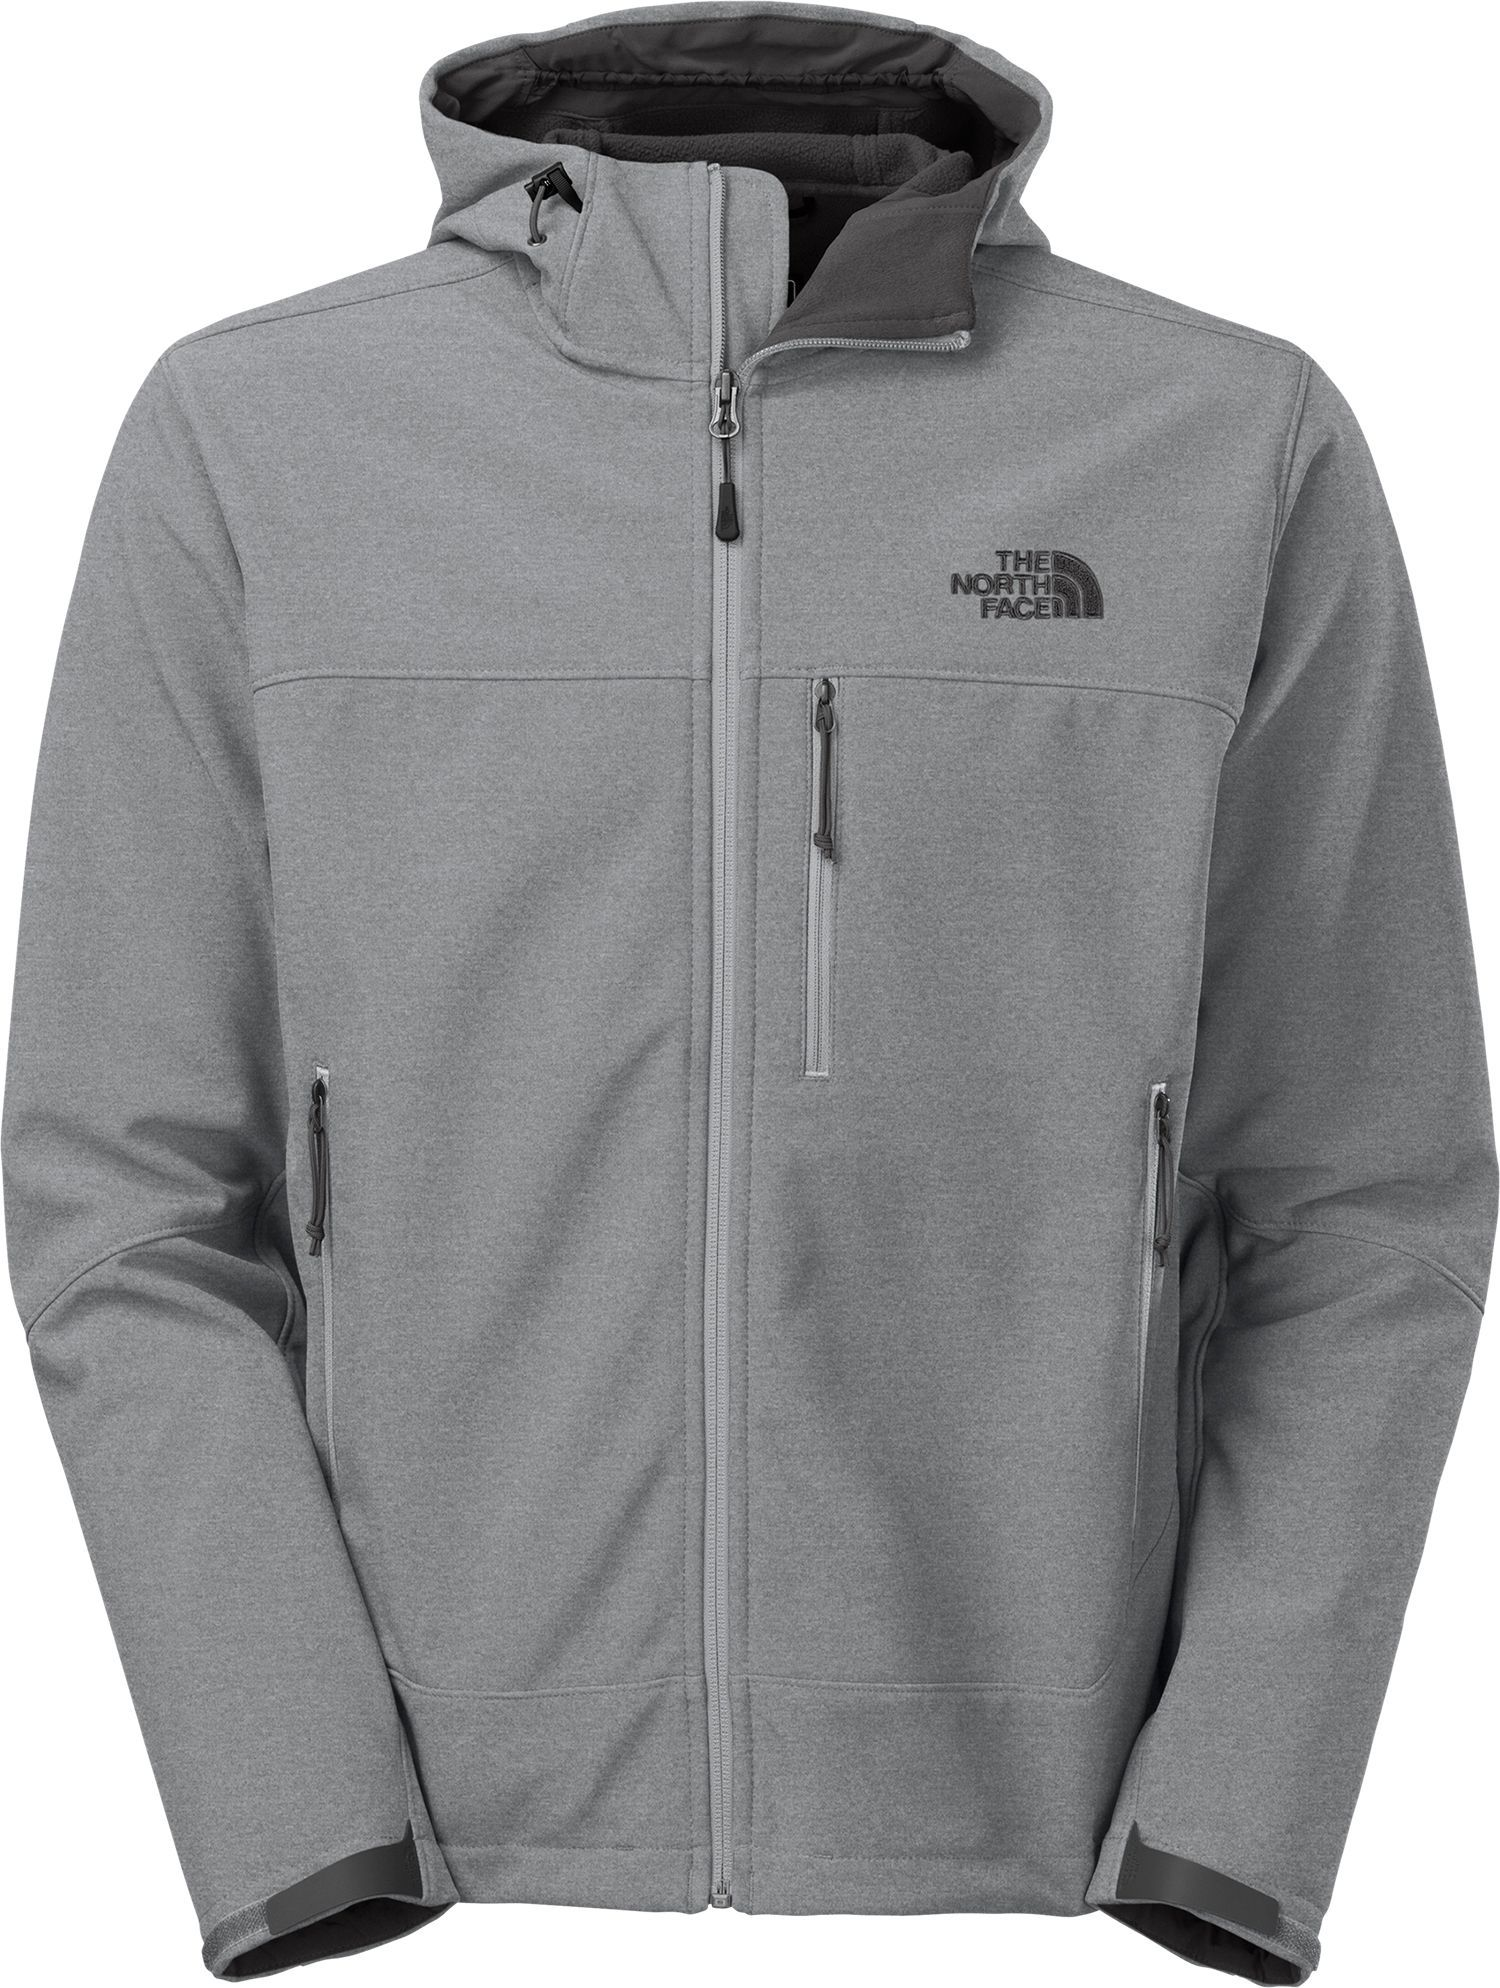 966bf10e5 The North Face Men's Apex Bionic Soft Shell Hooded Jacket | Products ...